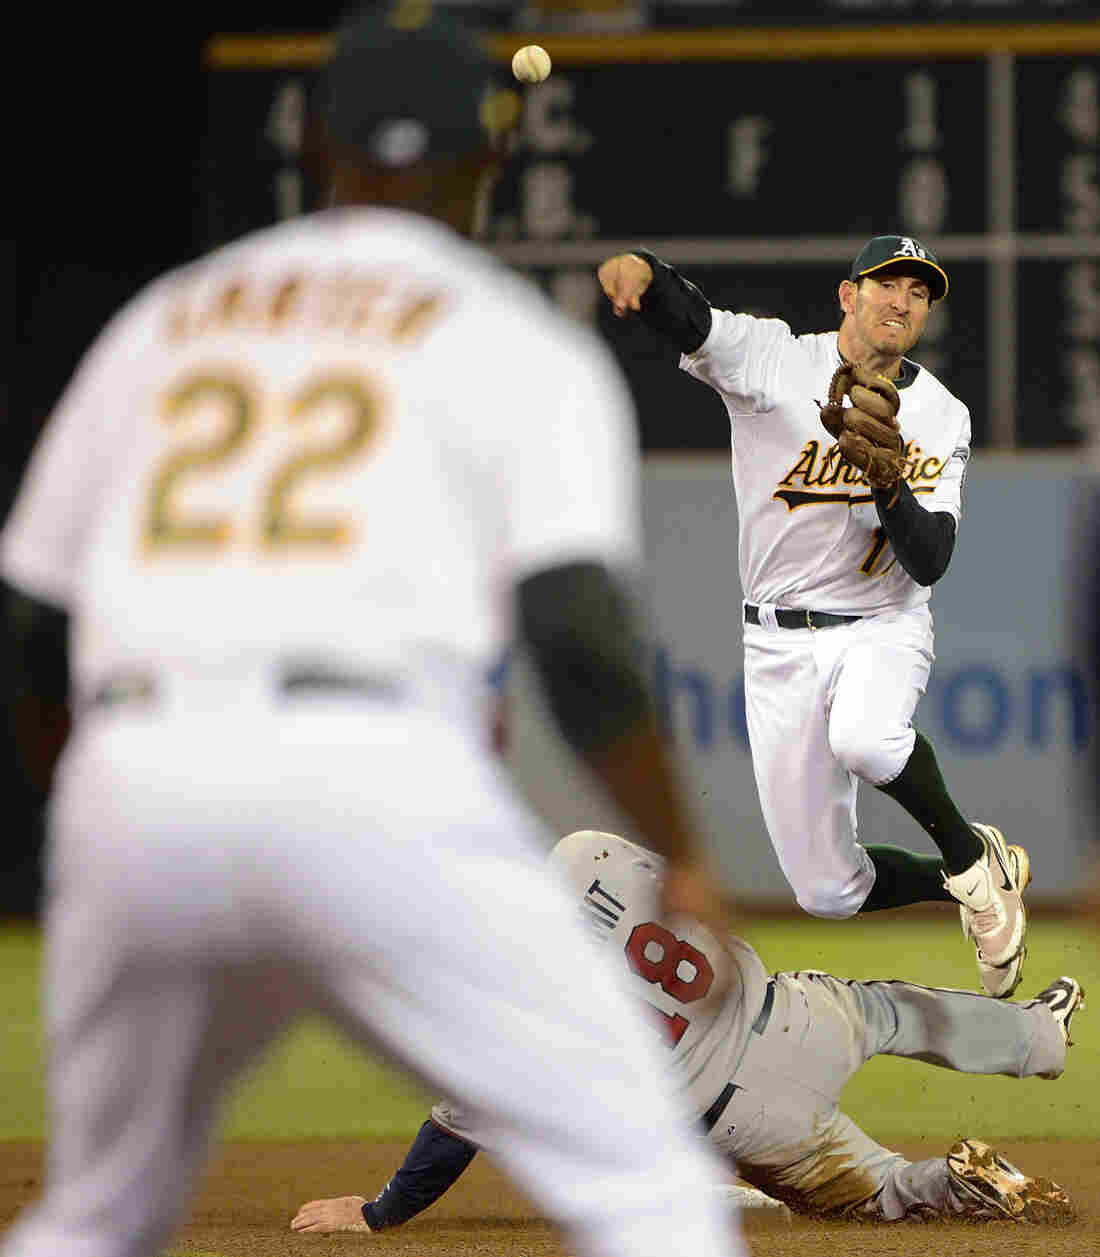 Adam Rosales of the Oakland Athletics gets his throw off to Chris Carter at first base to complete Tuesday night's triple play.